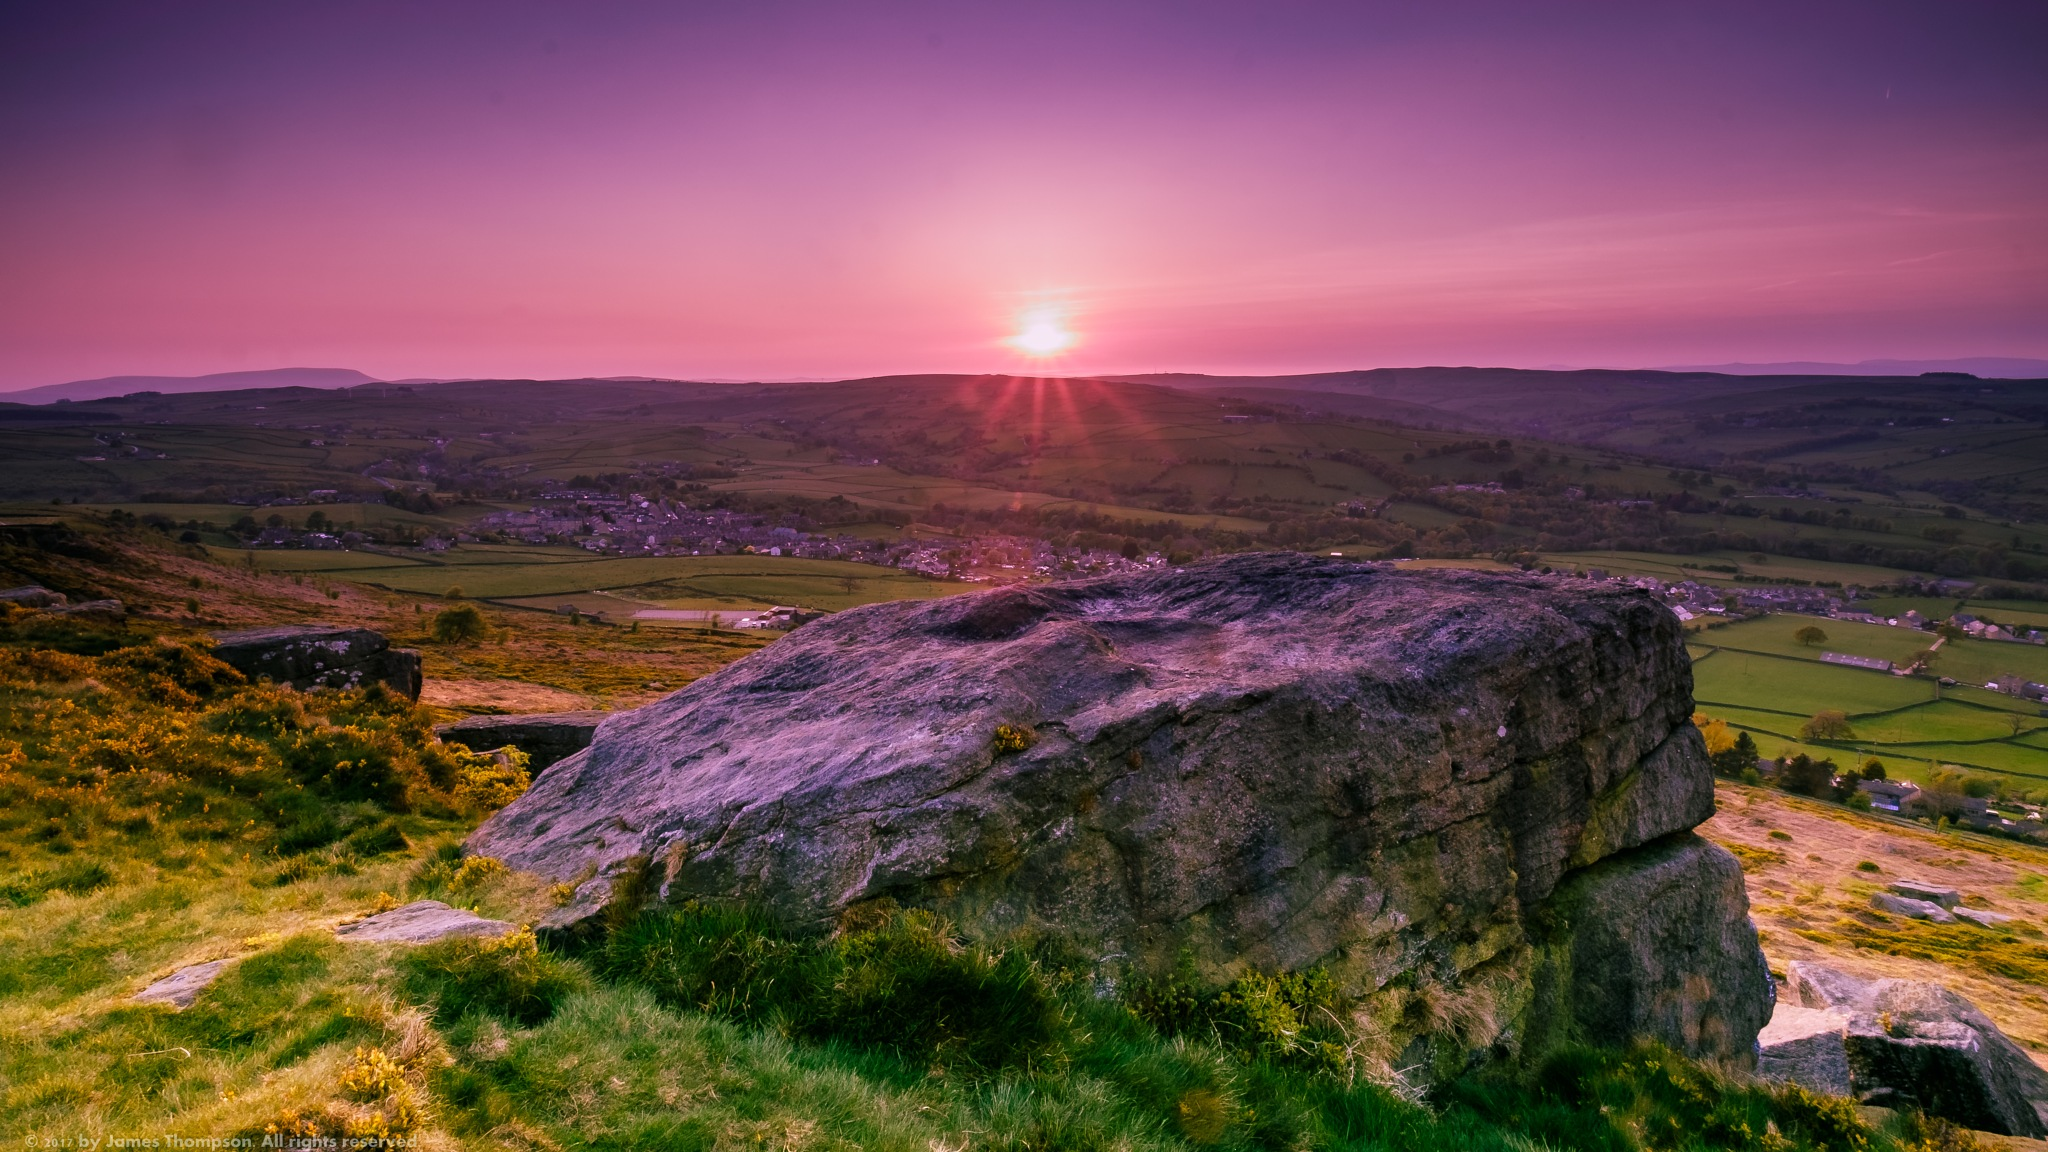 Sunset from Wainman's pinnacle by James Thompson